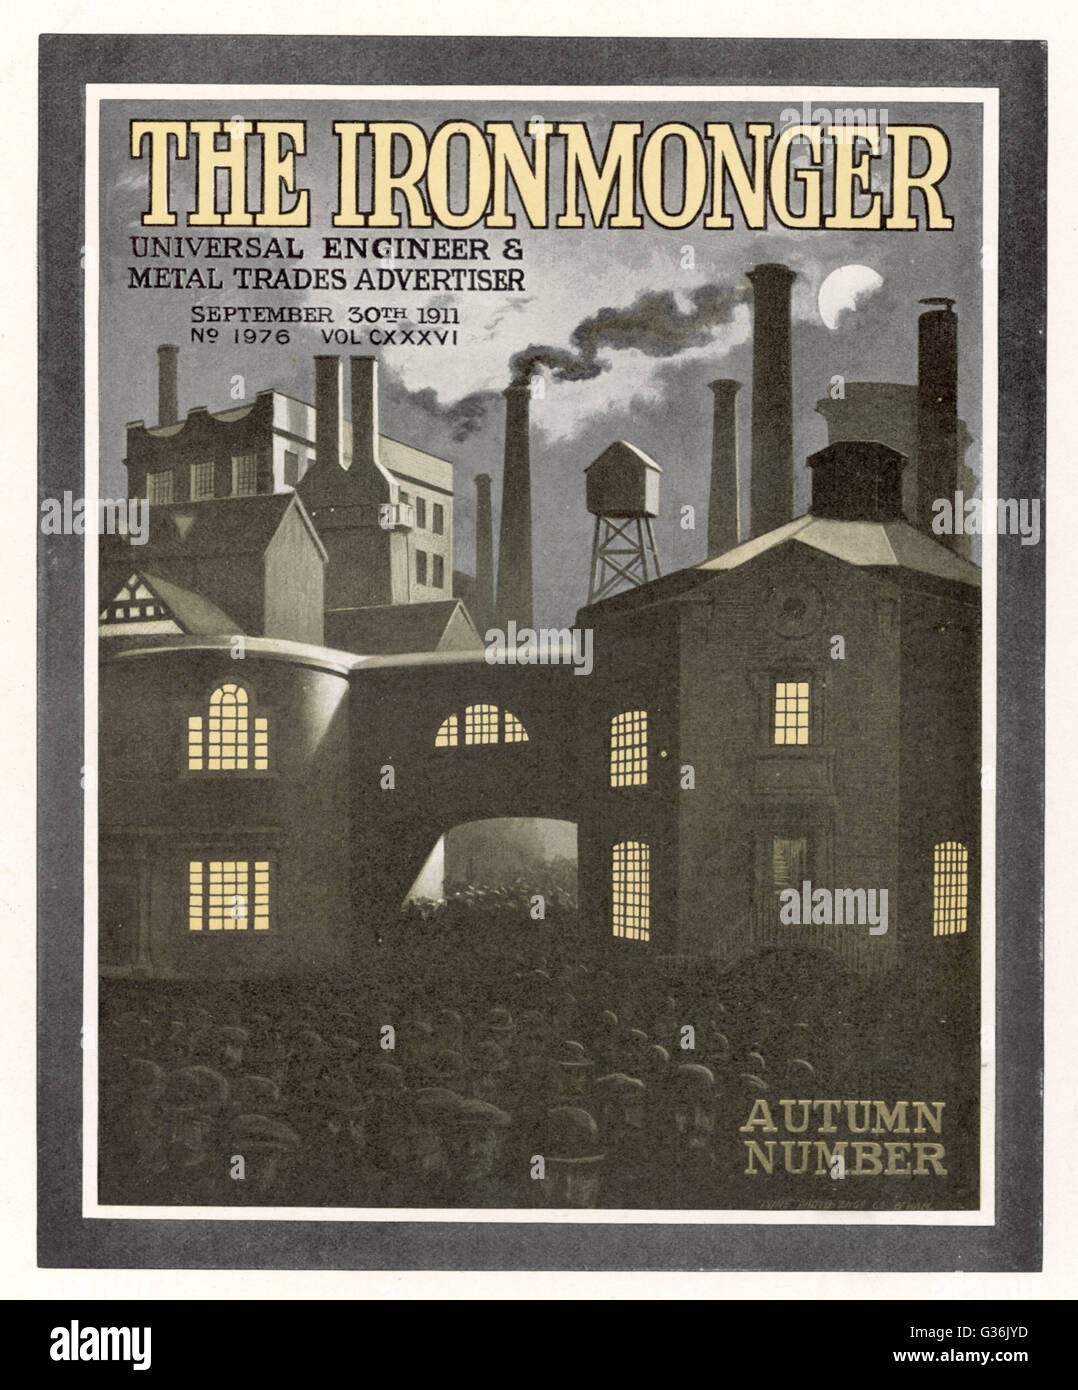 British factory exterior, as depicted on the cover of The Ironmonger magazine.     Date: 1911 - Stock Image